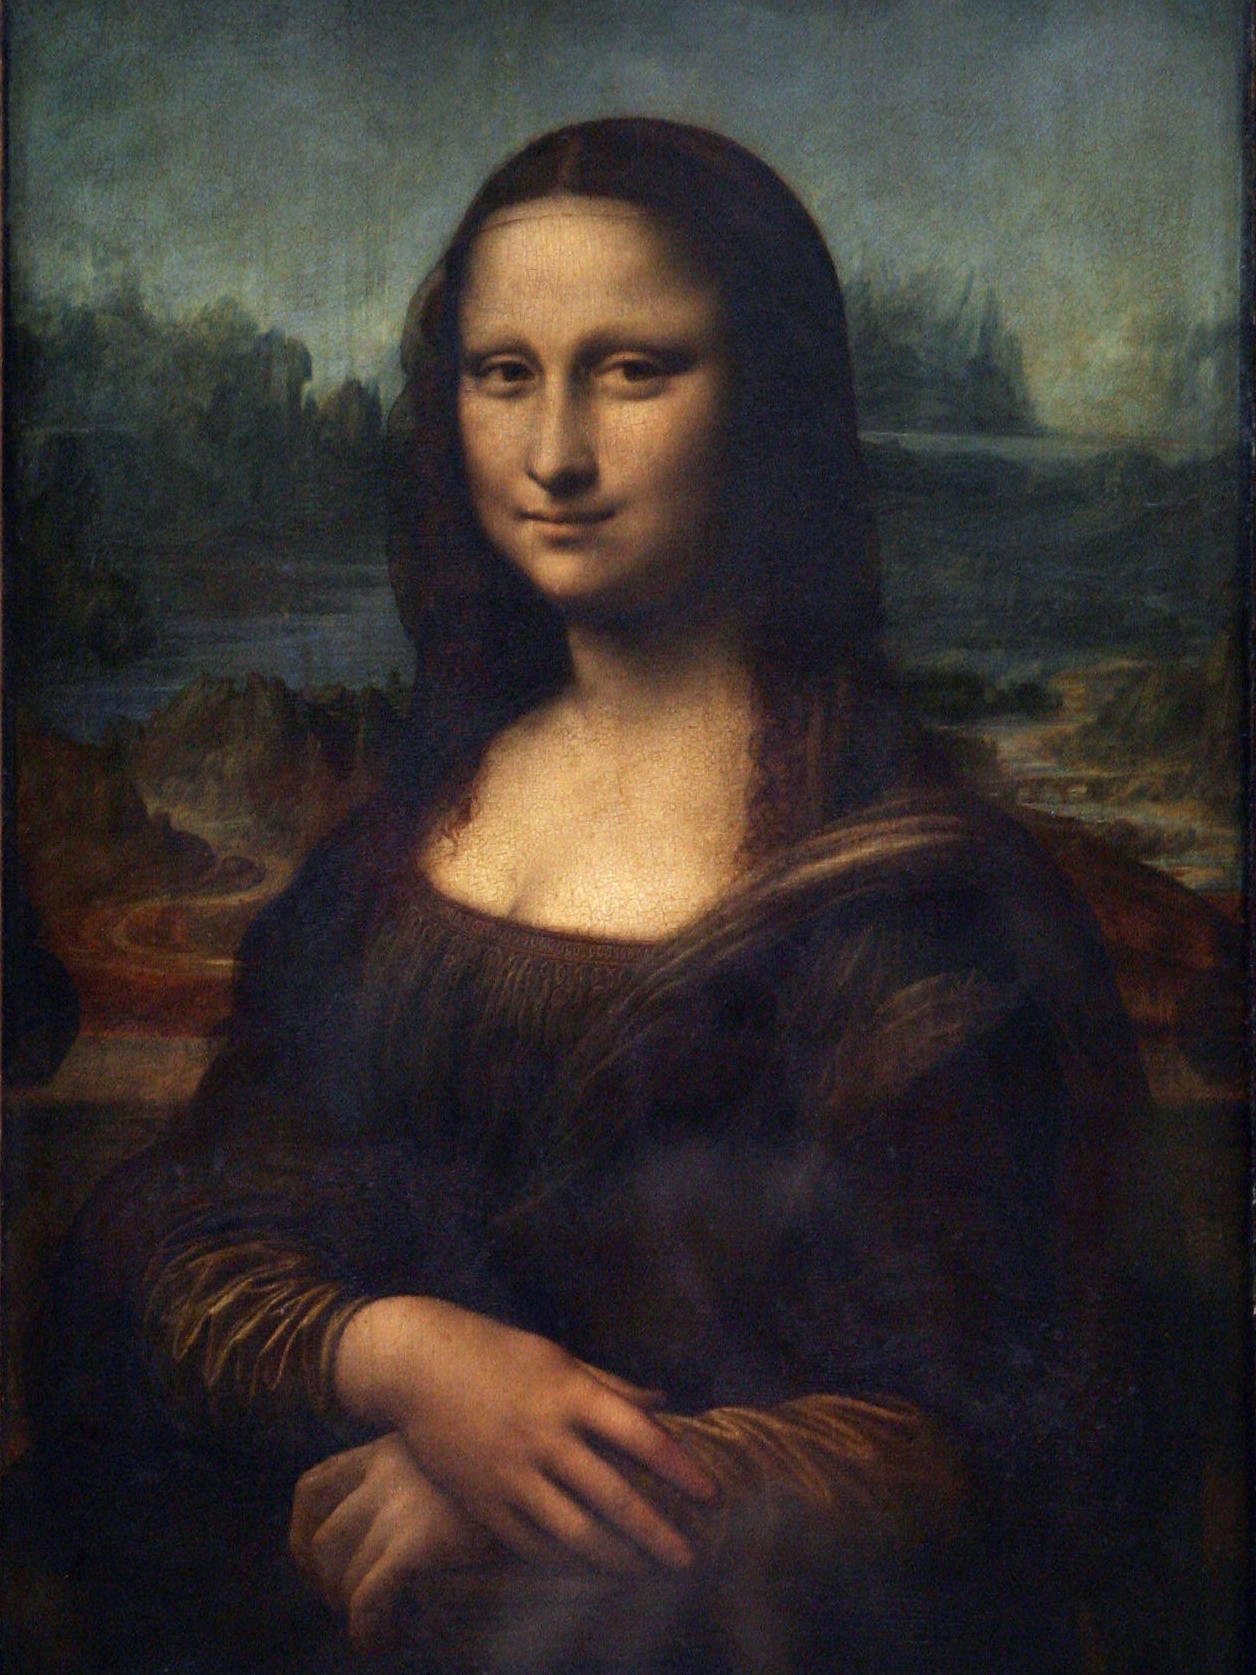 Draw My Left! No, No, My Other Left! A Hidden Bias In Art History Revealed